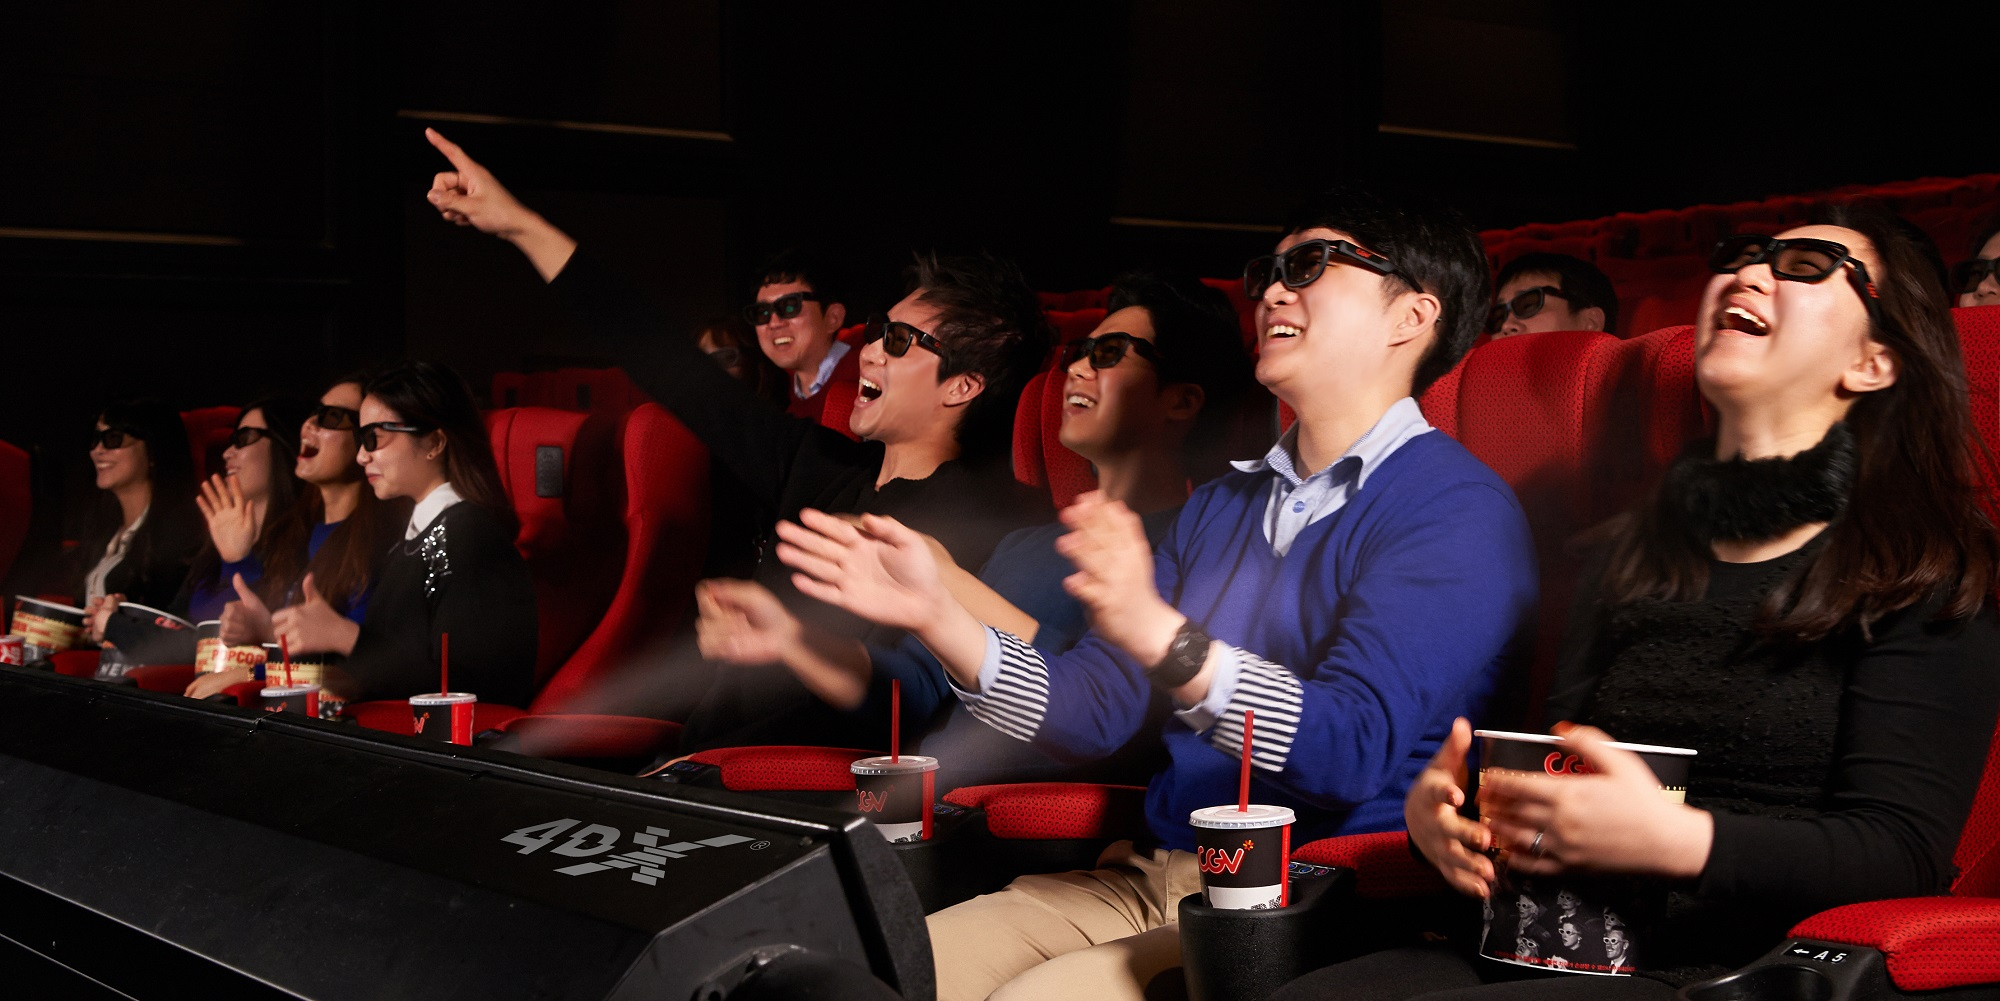 CJ 4DPLEX opens a second 4DX theater at the Regal E-Walk 13 in Manhattan, New York, on May 5.